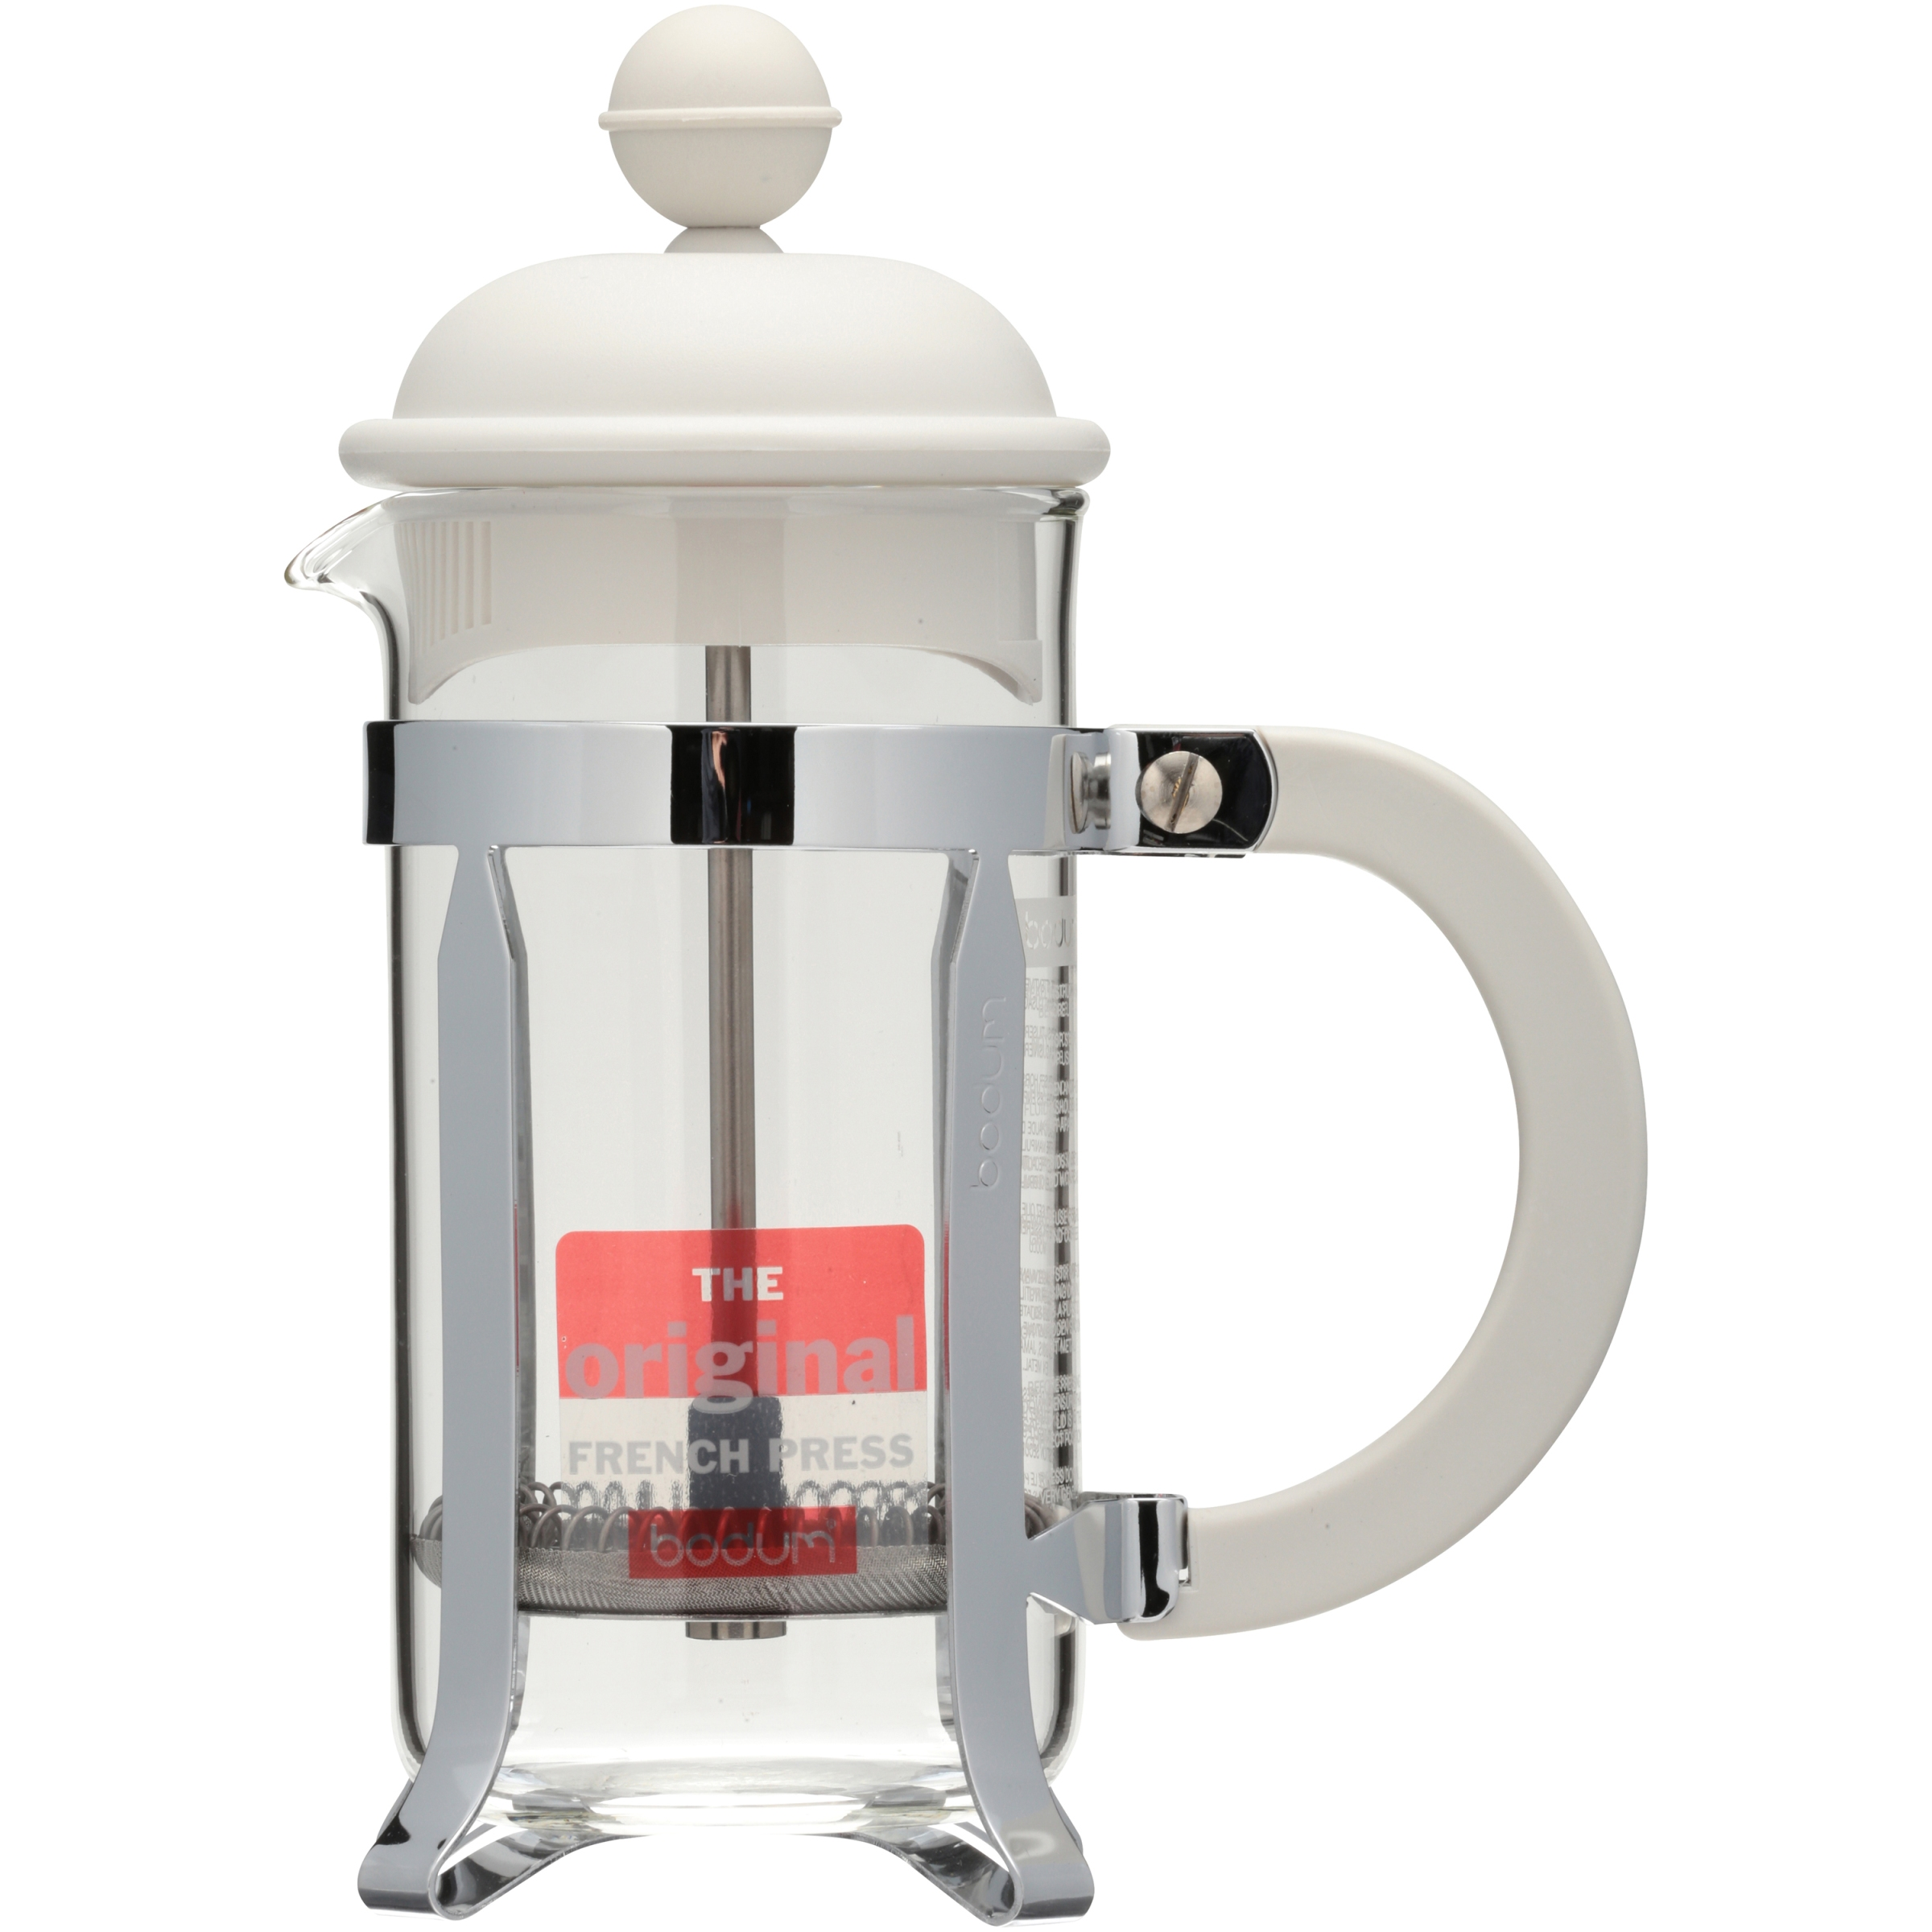 Bodum CAFFETTIERA French Press Coffee Maker, 3 cup, 0.35 L, 12 oz, Black